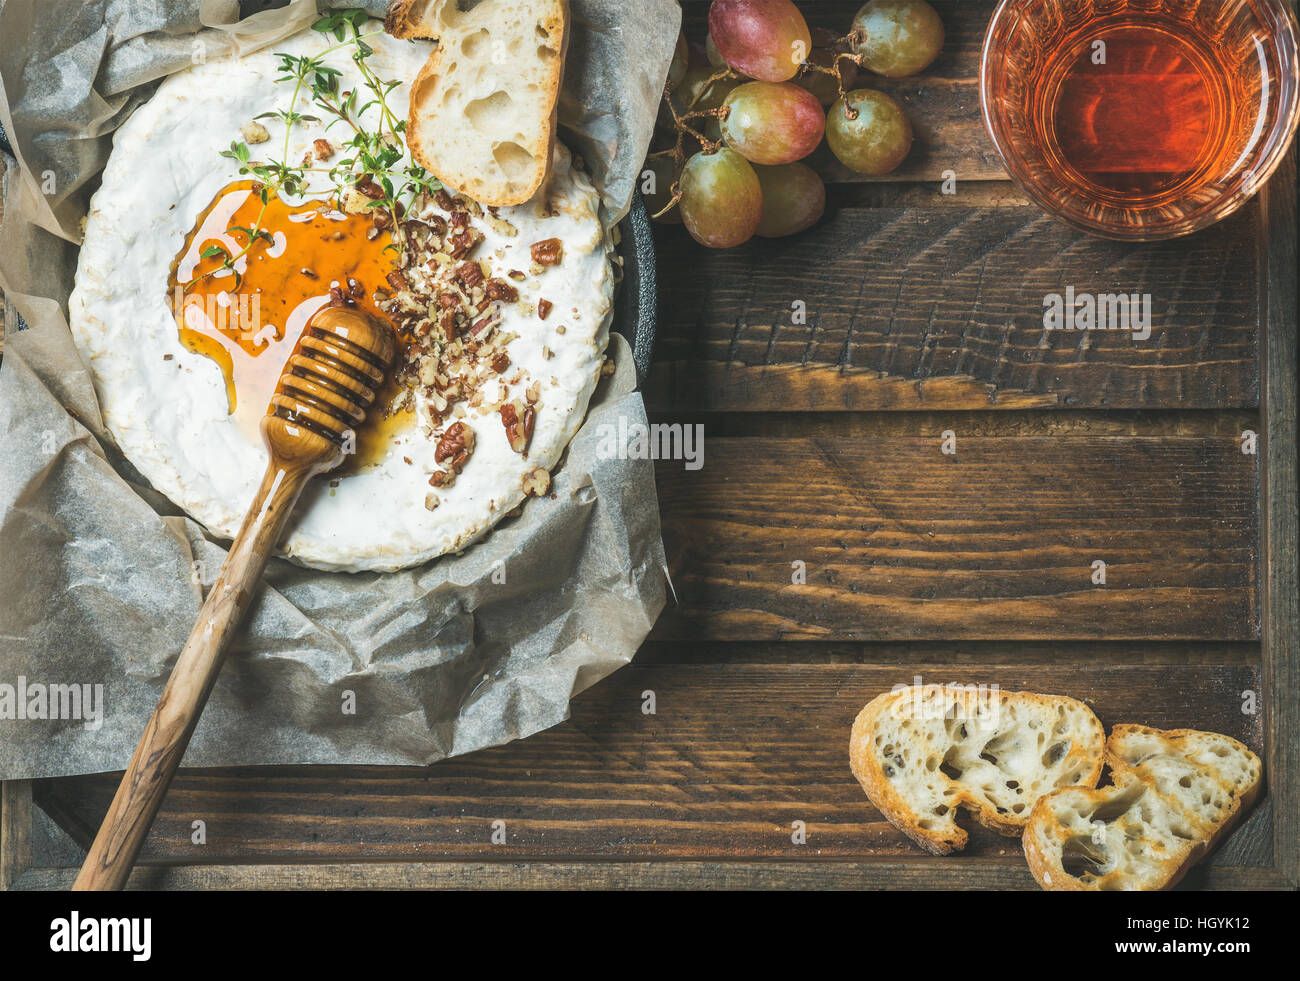 Camembert , grapes, baguette slices and glass of rose wine - Stock Image